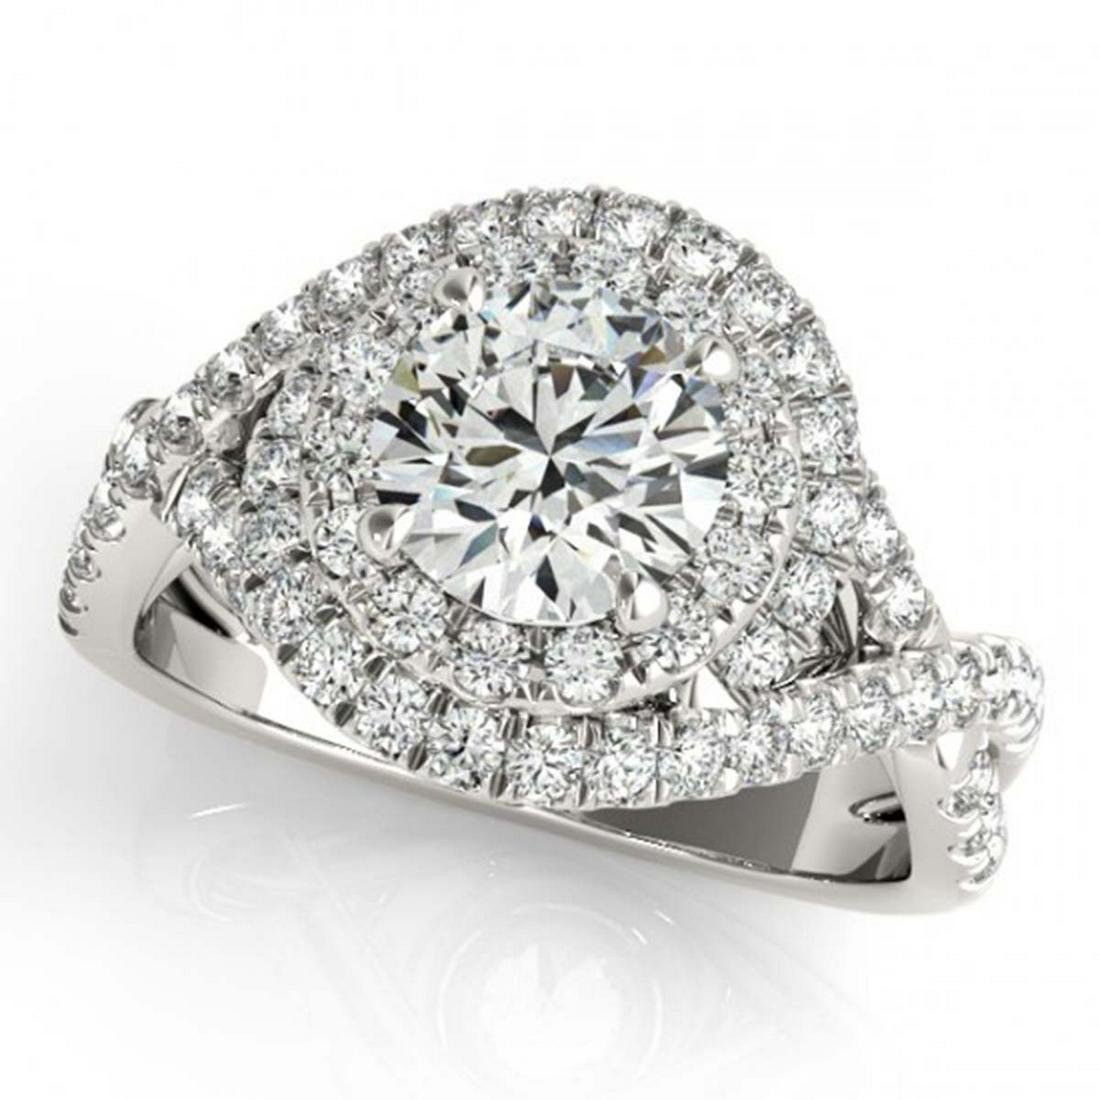 1.50 ctw VS/SI Diamond Solitaire Halo Ring 14K White